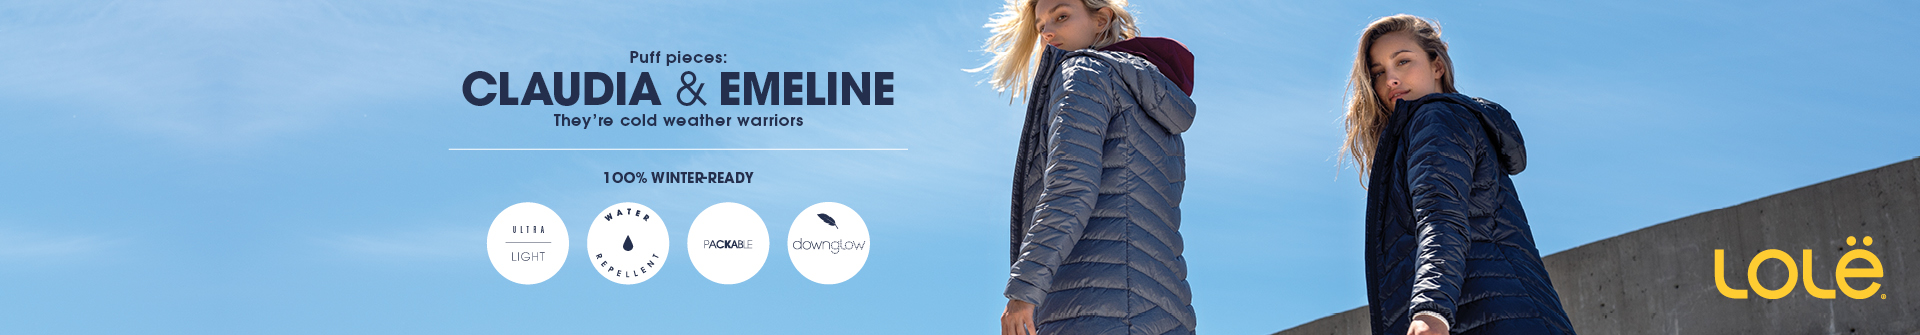 Shop Lole Athletic Women's Winter Jackets, Apparel, & Outerwear